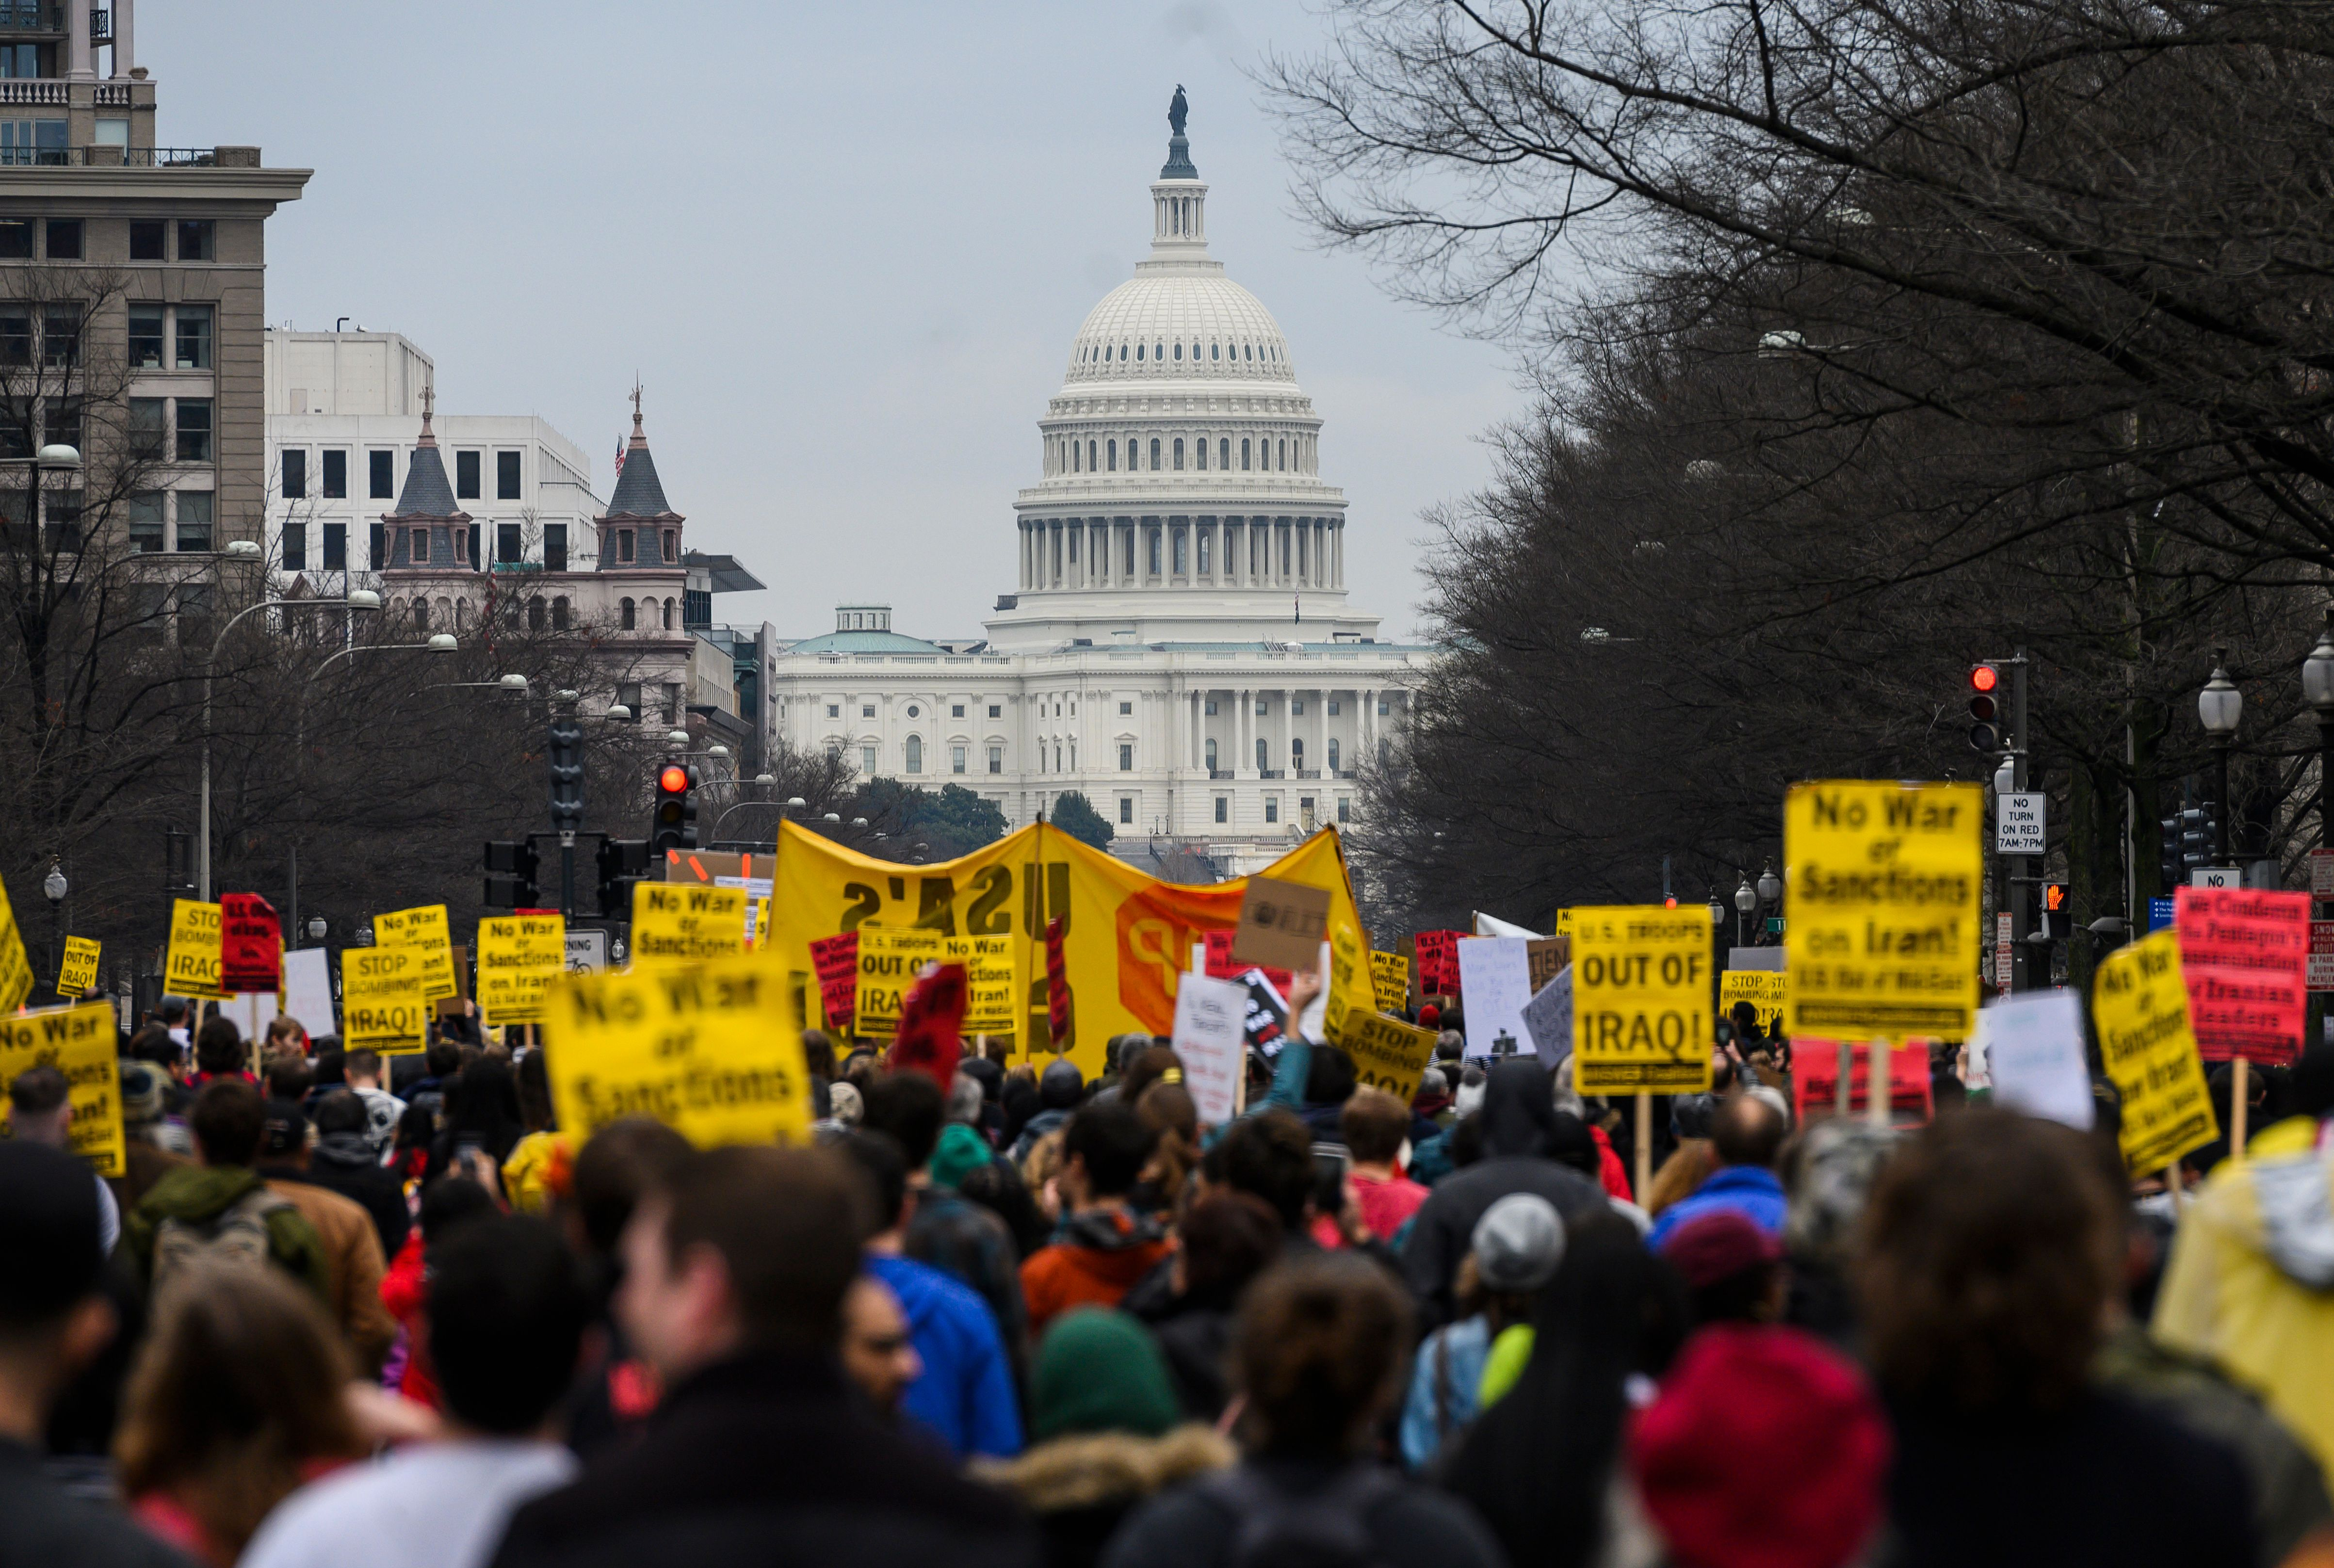 An anti-war march from the White House to the Trump International Hotel in Washington, DC, on January 4, 2020.